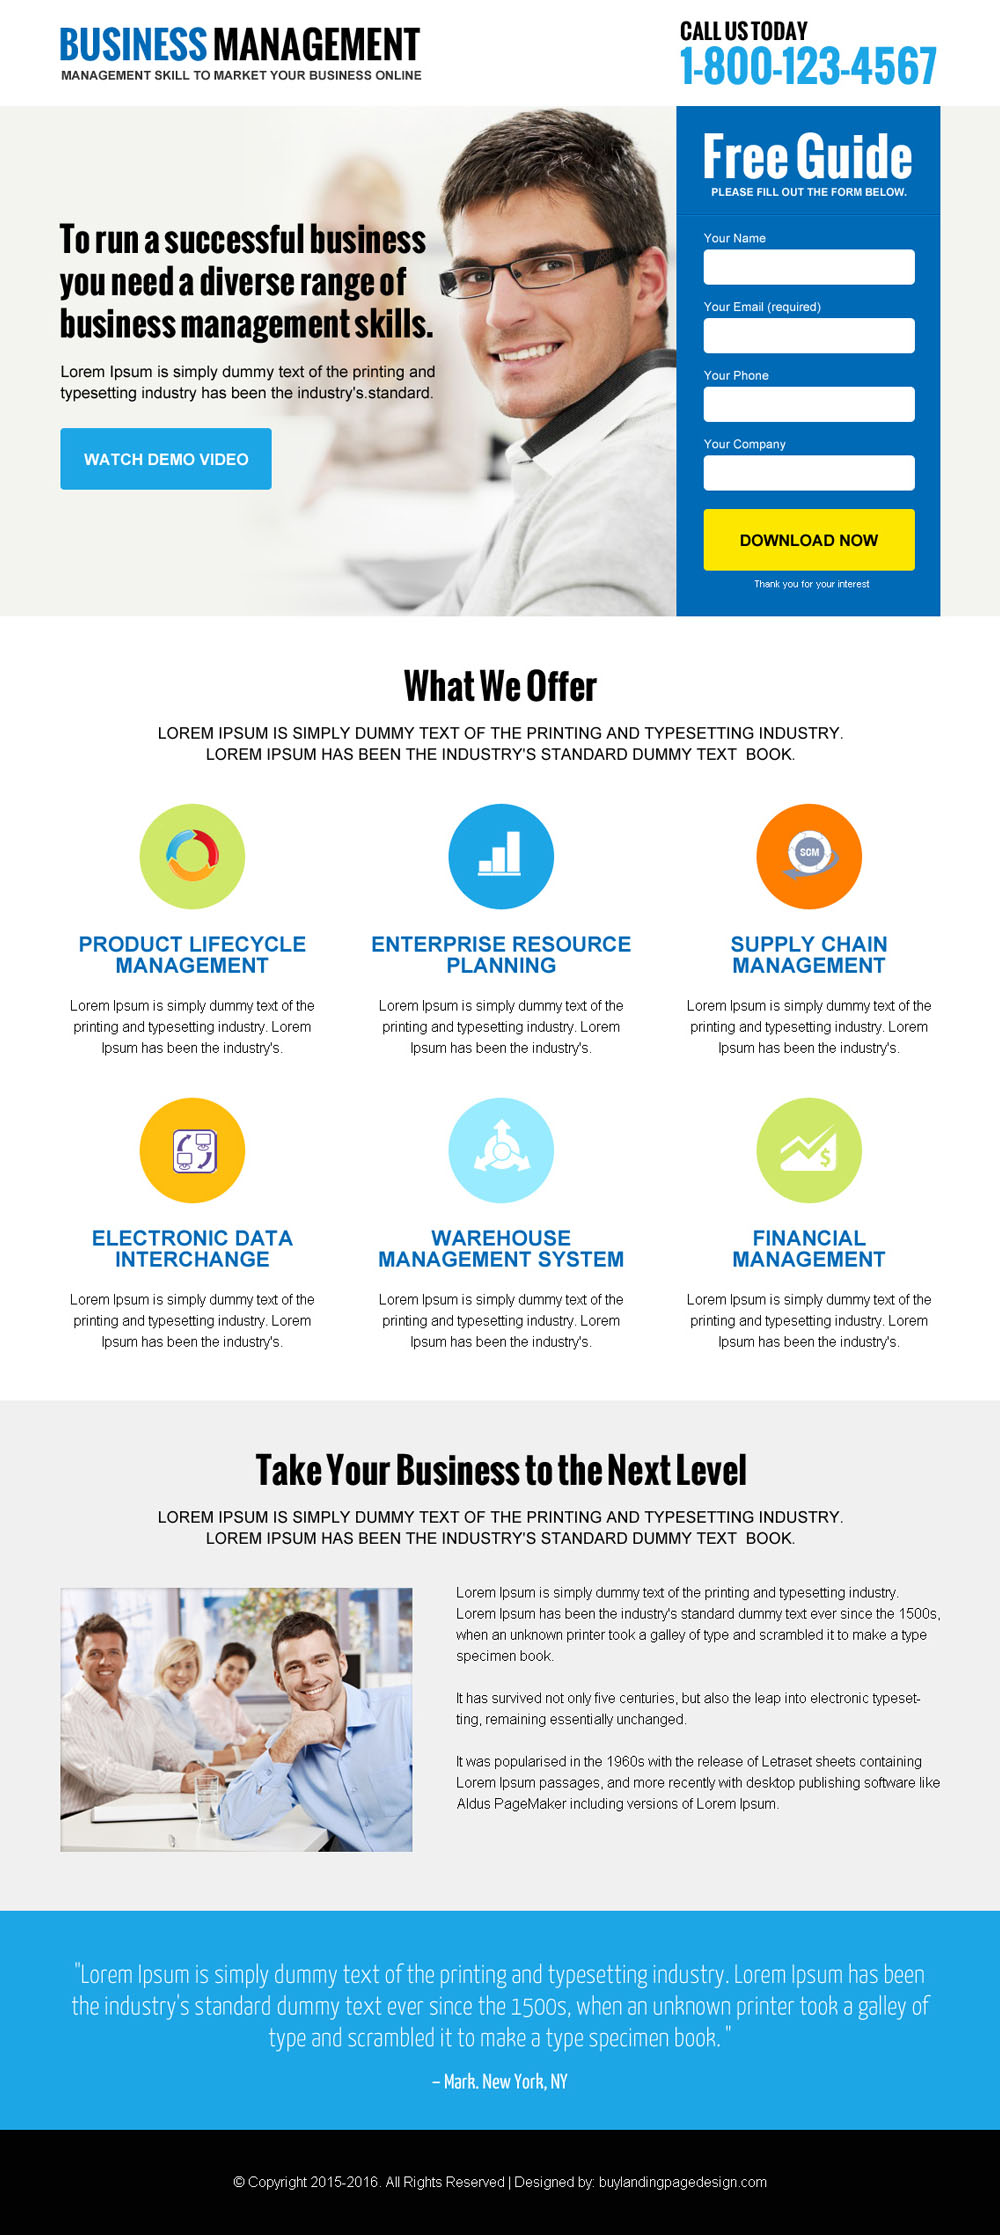 online-business-management-lead-gen-landing-page-to-market-your-business-032